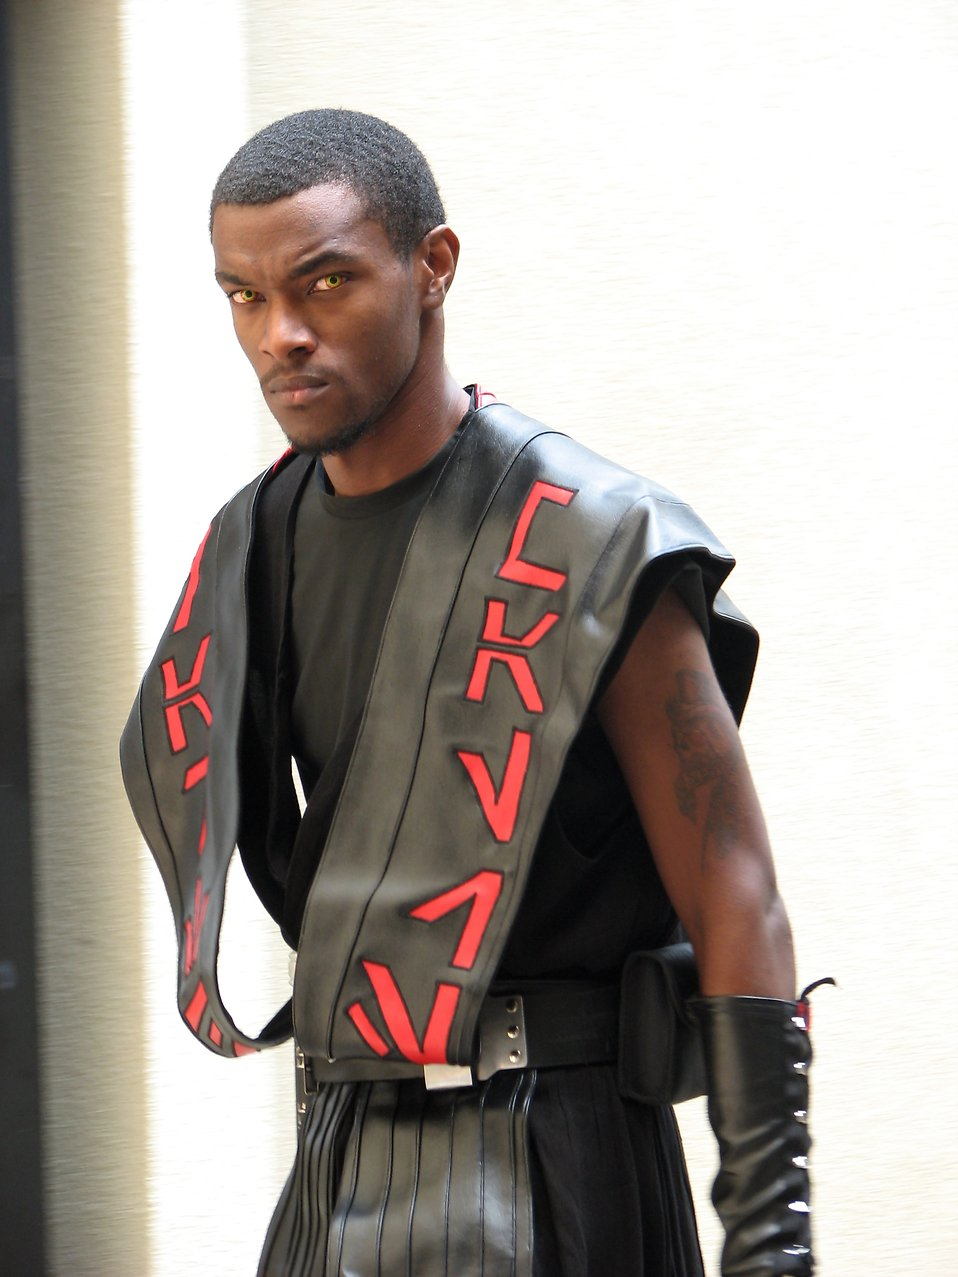 Young black man in leather alien costume at Dragoncon 2008 : Free Stock Photo